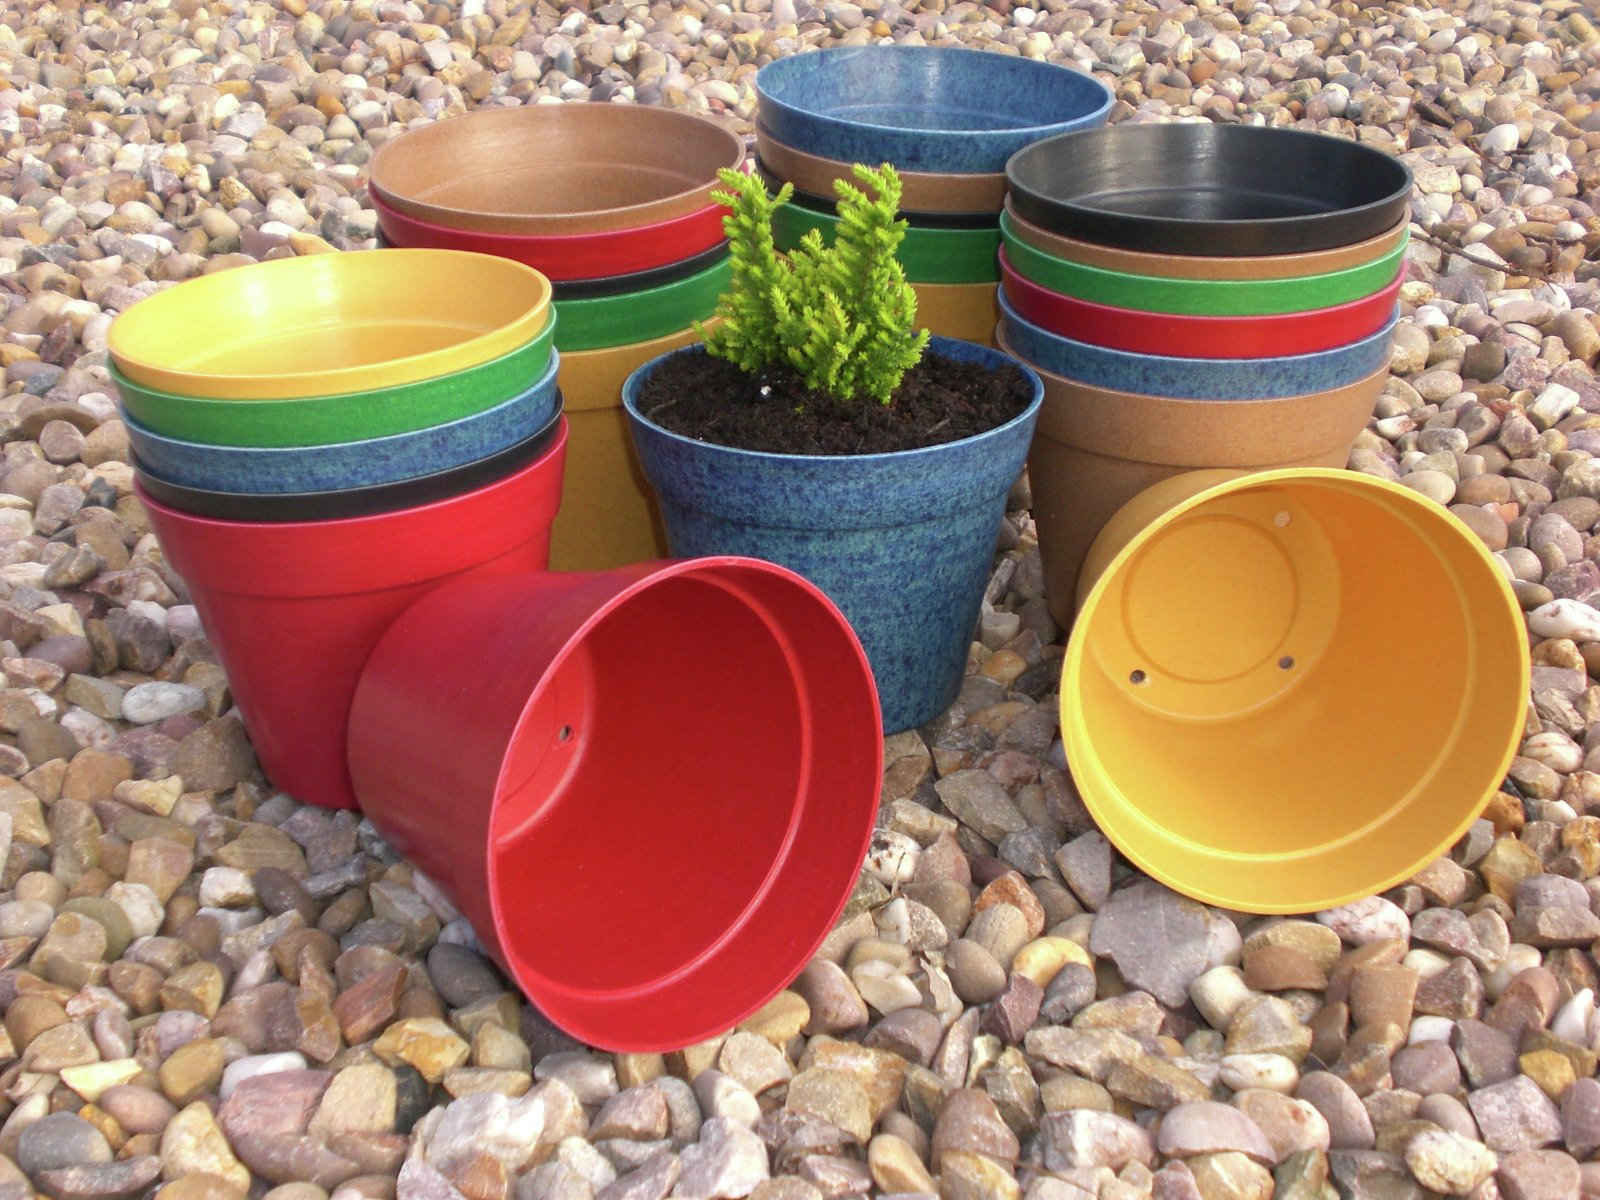 Buy Garden XP Biodegradable Mixed Colour Garden Pots 24 Pack at